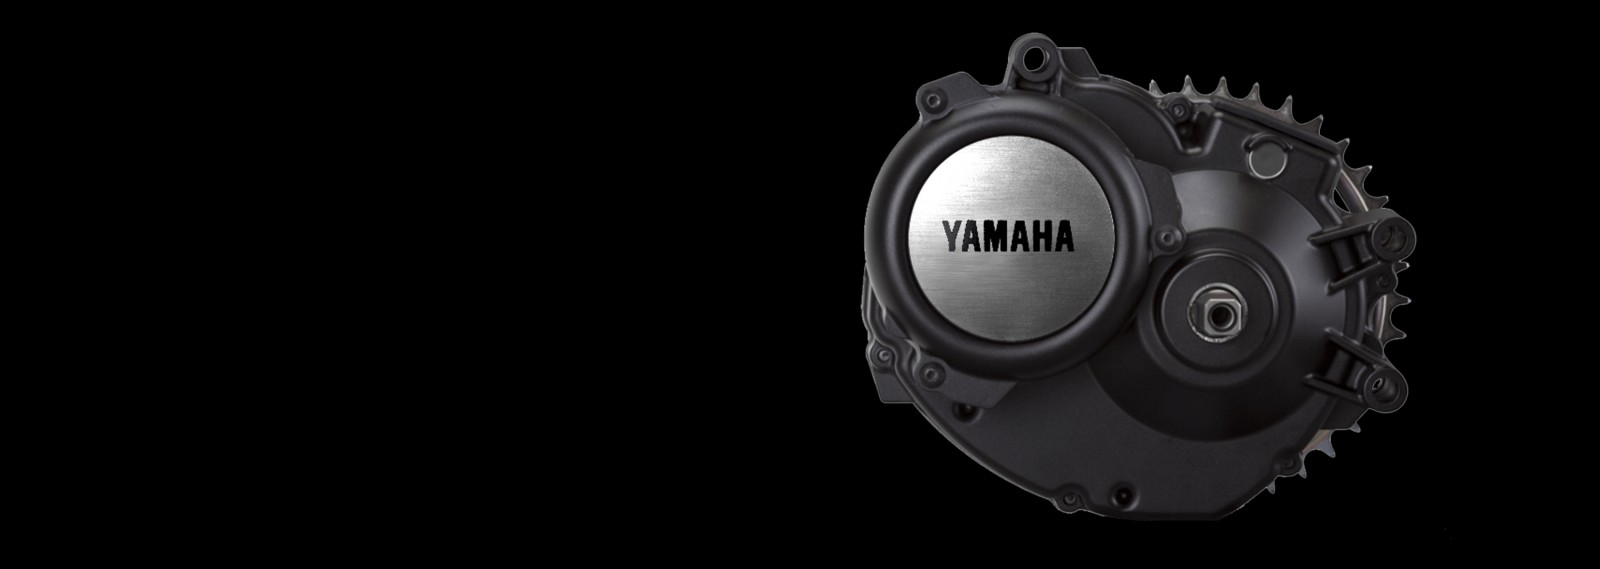 Yamaha 500W PW Drive Unit